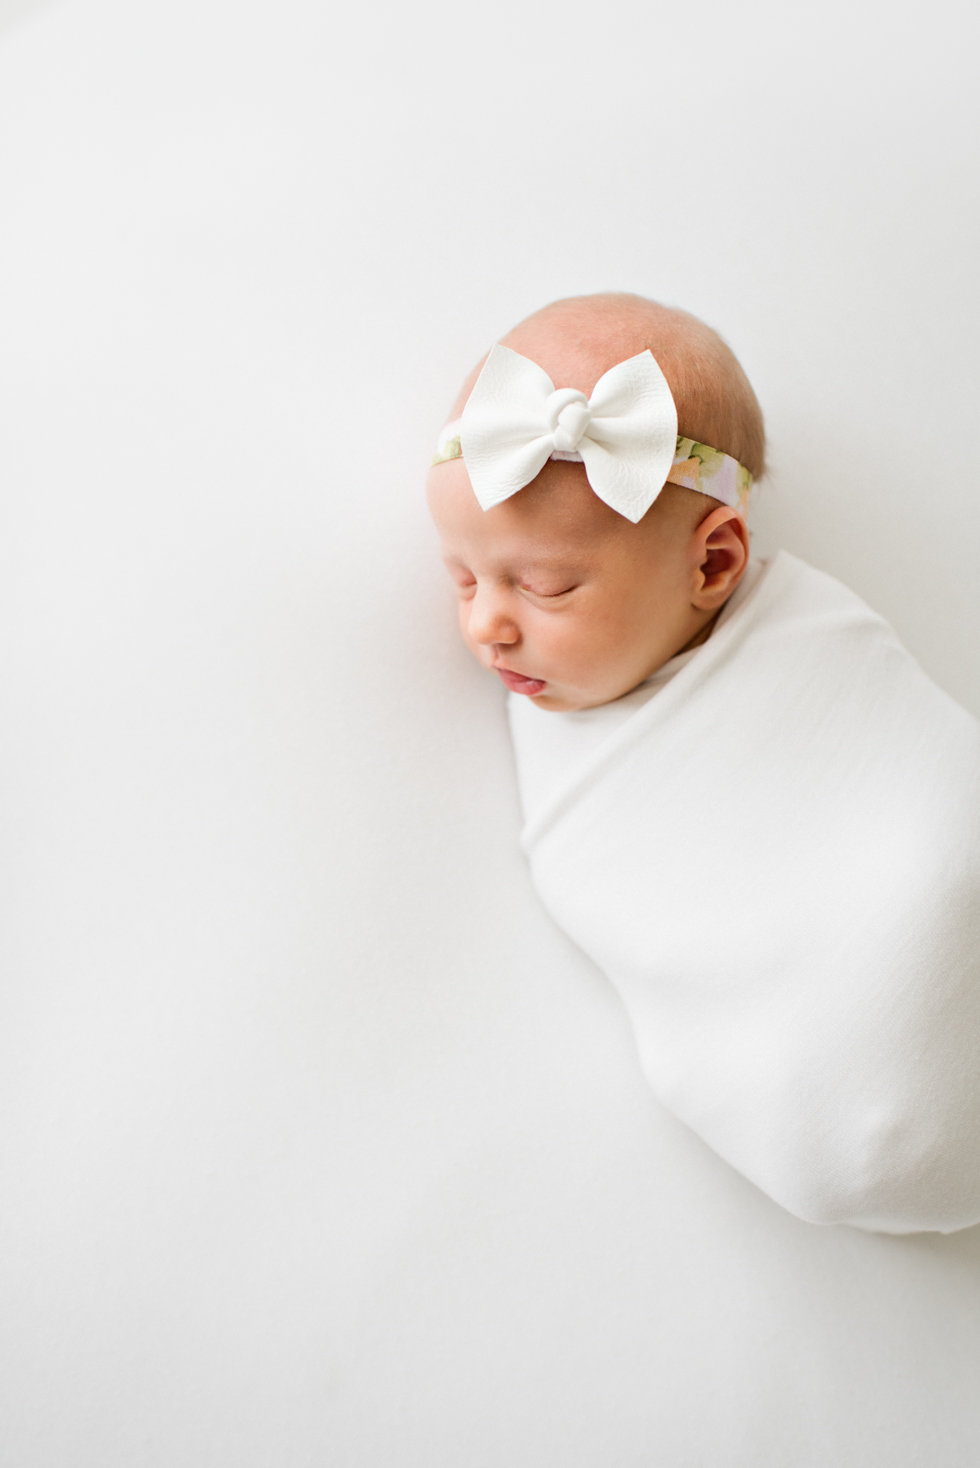 Tiny Baby Girl U2026utah Newborn Photography Studio  U00bb B Couture